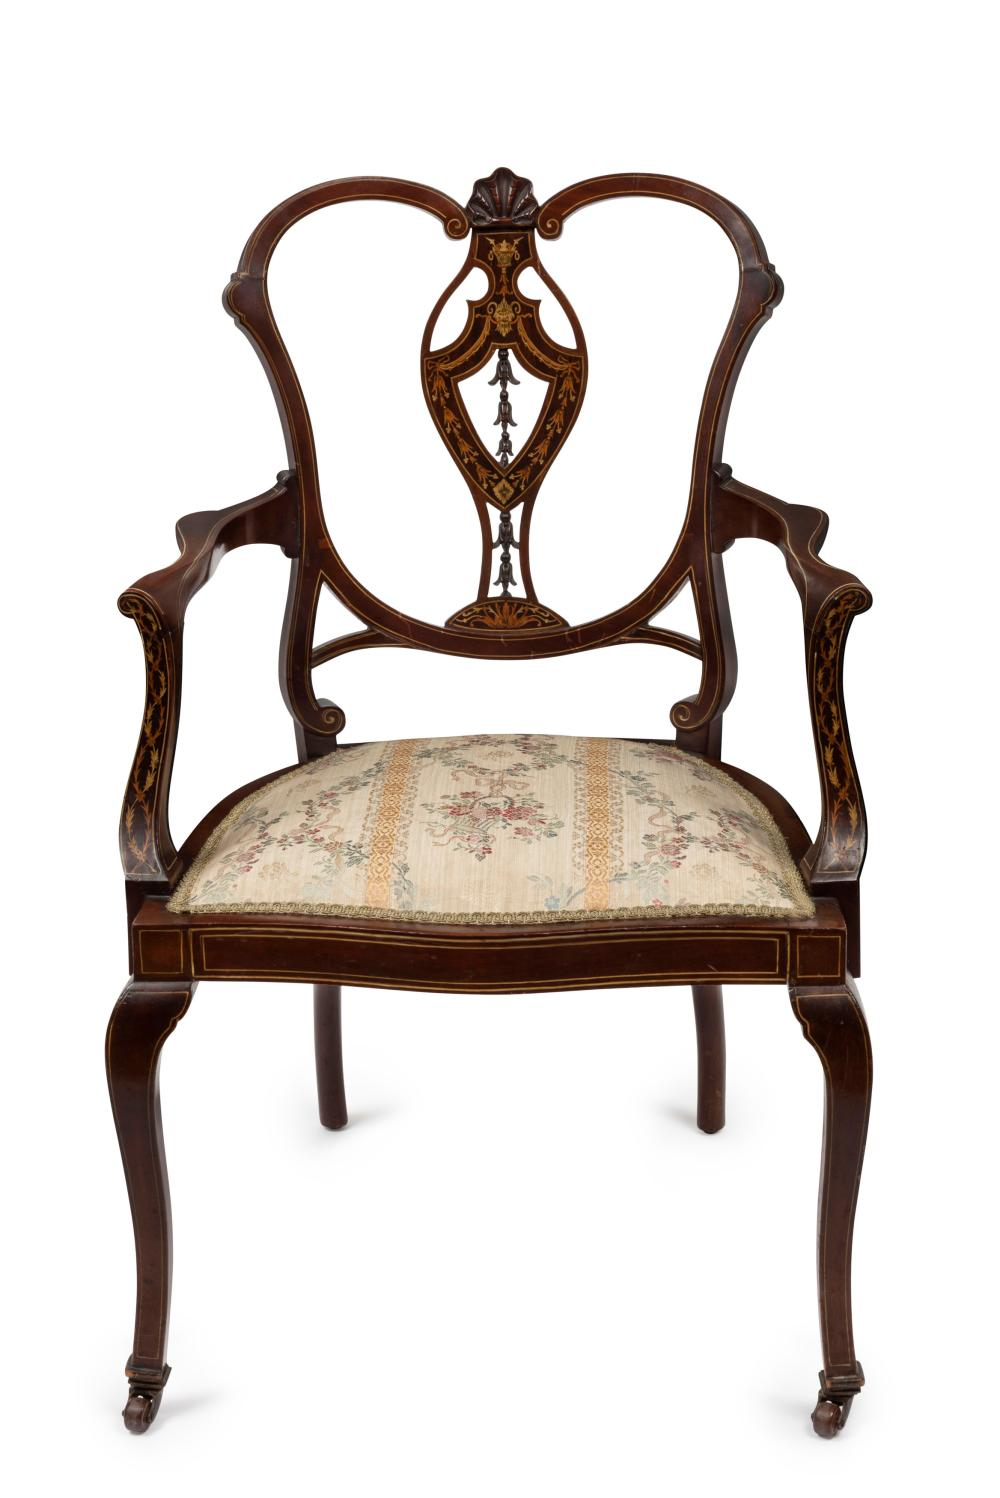 An antique English mahogany parlour chair with fine marquetry inlay and brocade floral silk upholstery, circa 1900, 57cm across the arms